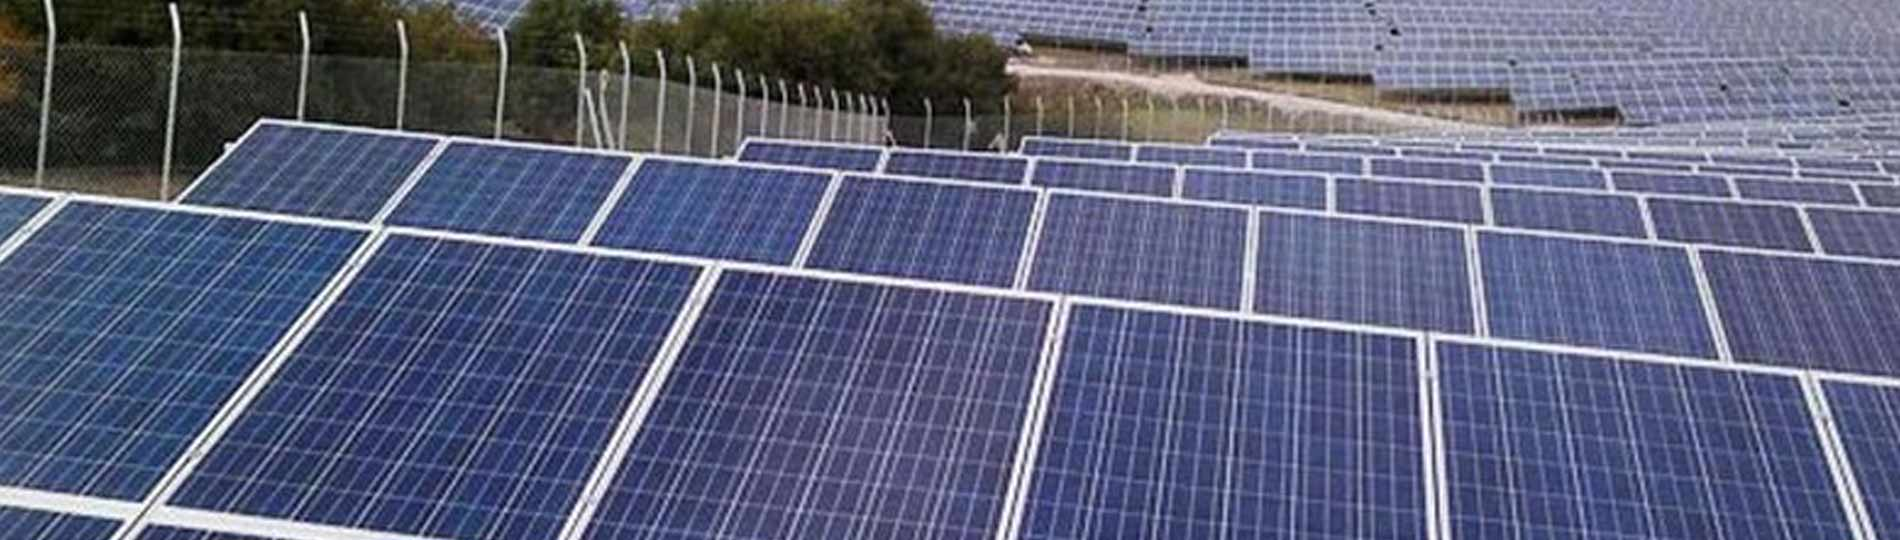 Italy plans 50 GW PV, 18.4 GW wind to meet 2030 target